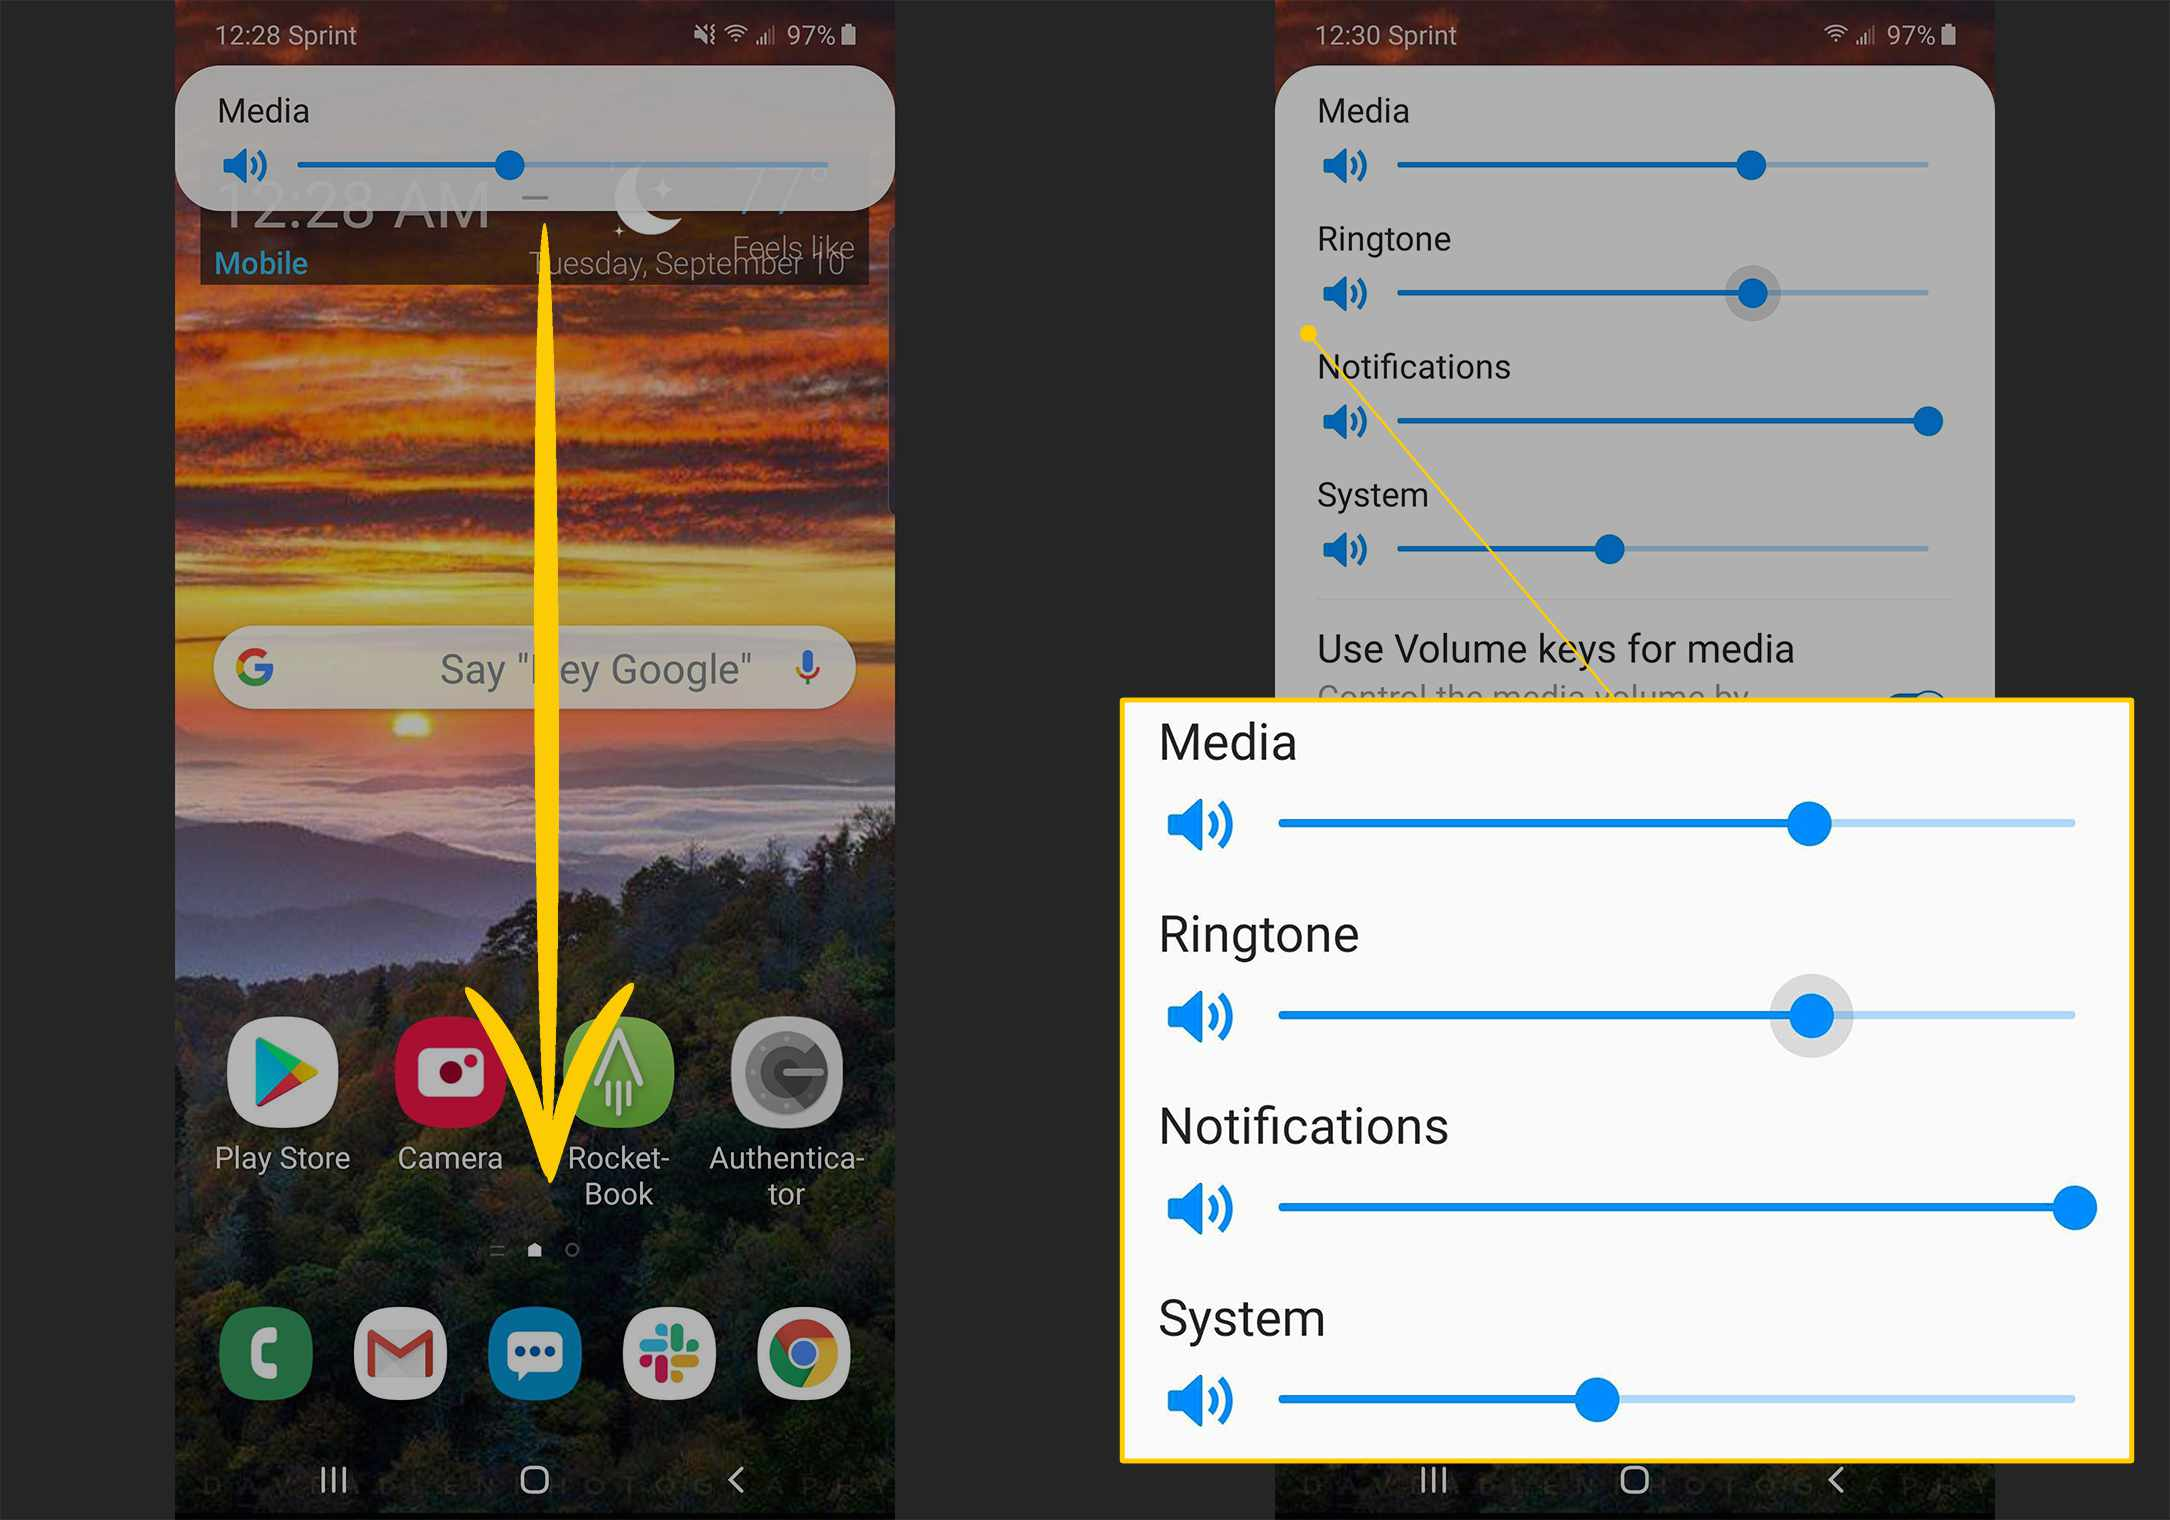 Swipe down from Media panel, media sliders on Android